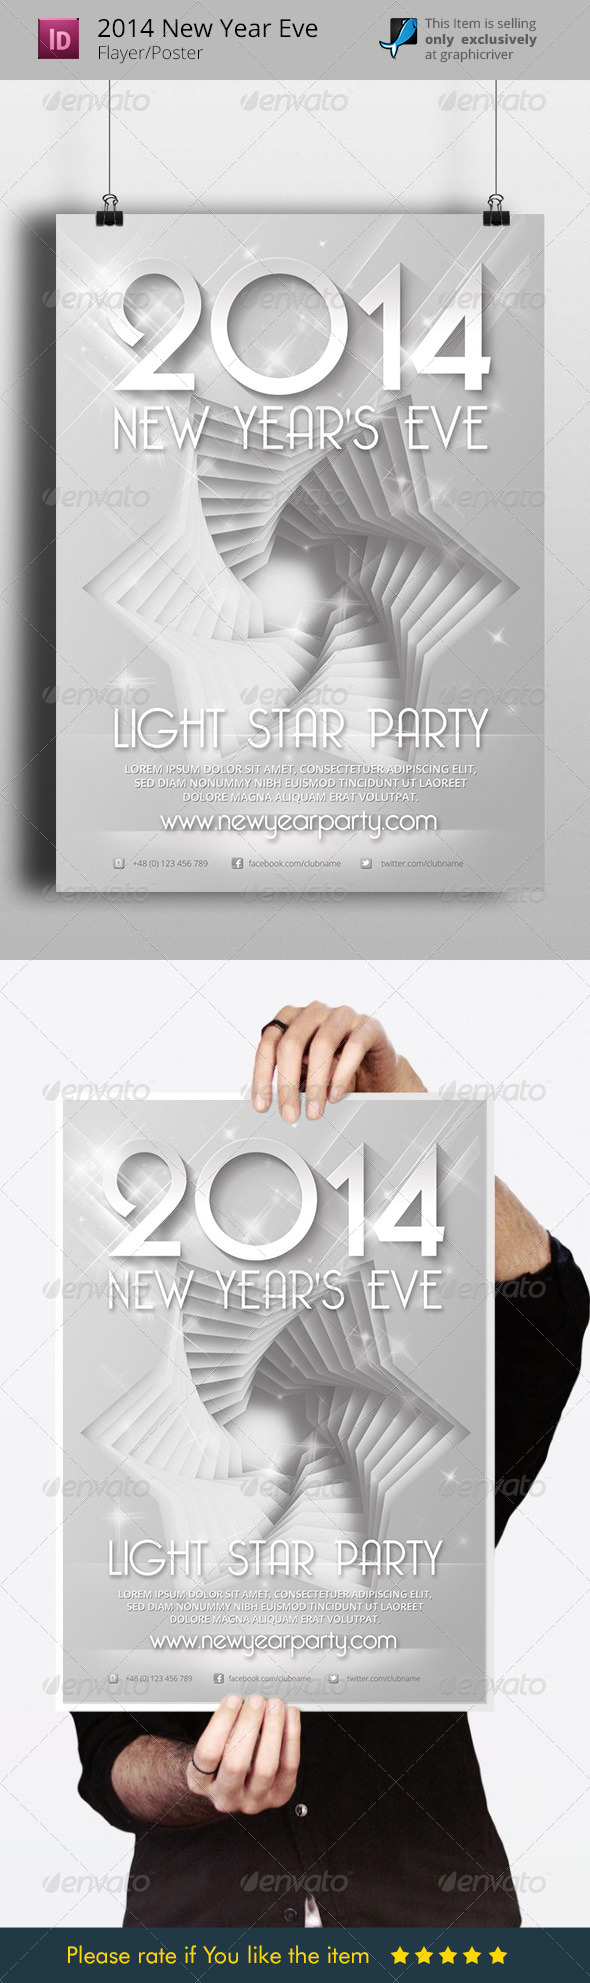 GraphicRiver 2014 New Years Eve Flyer Template 6286059